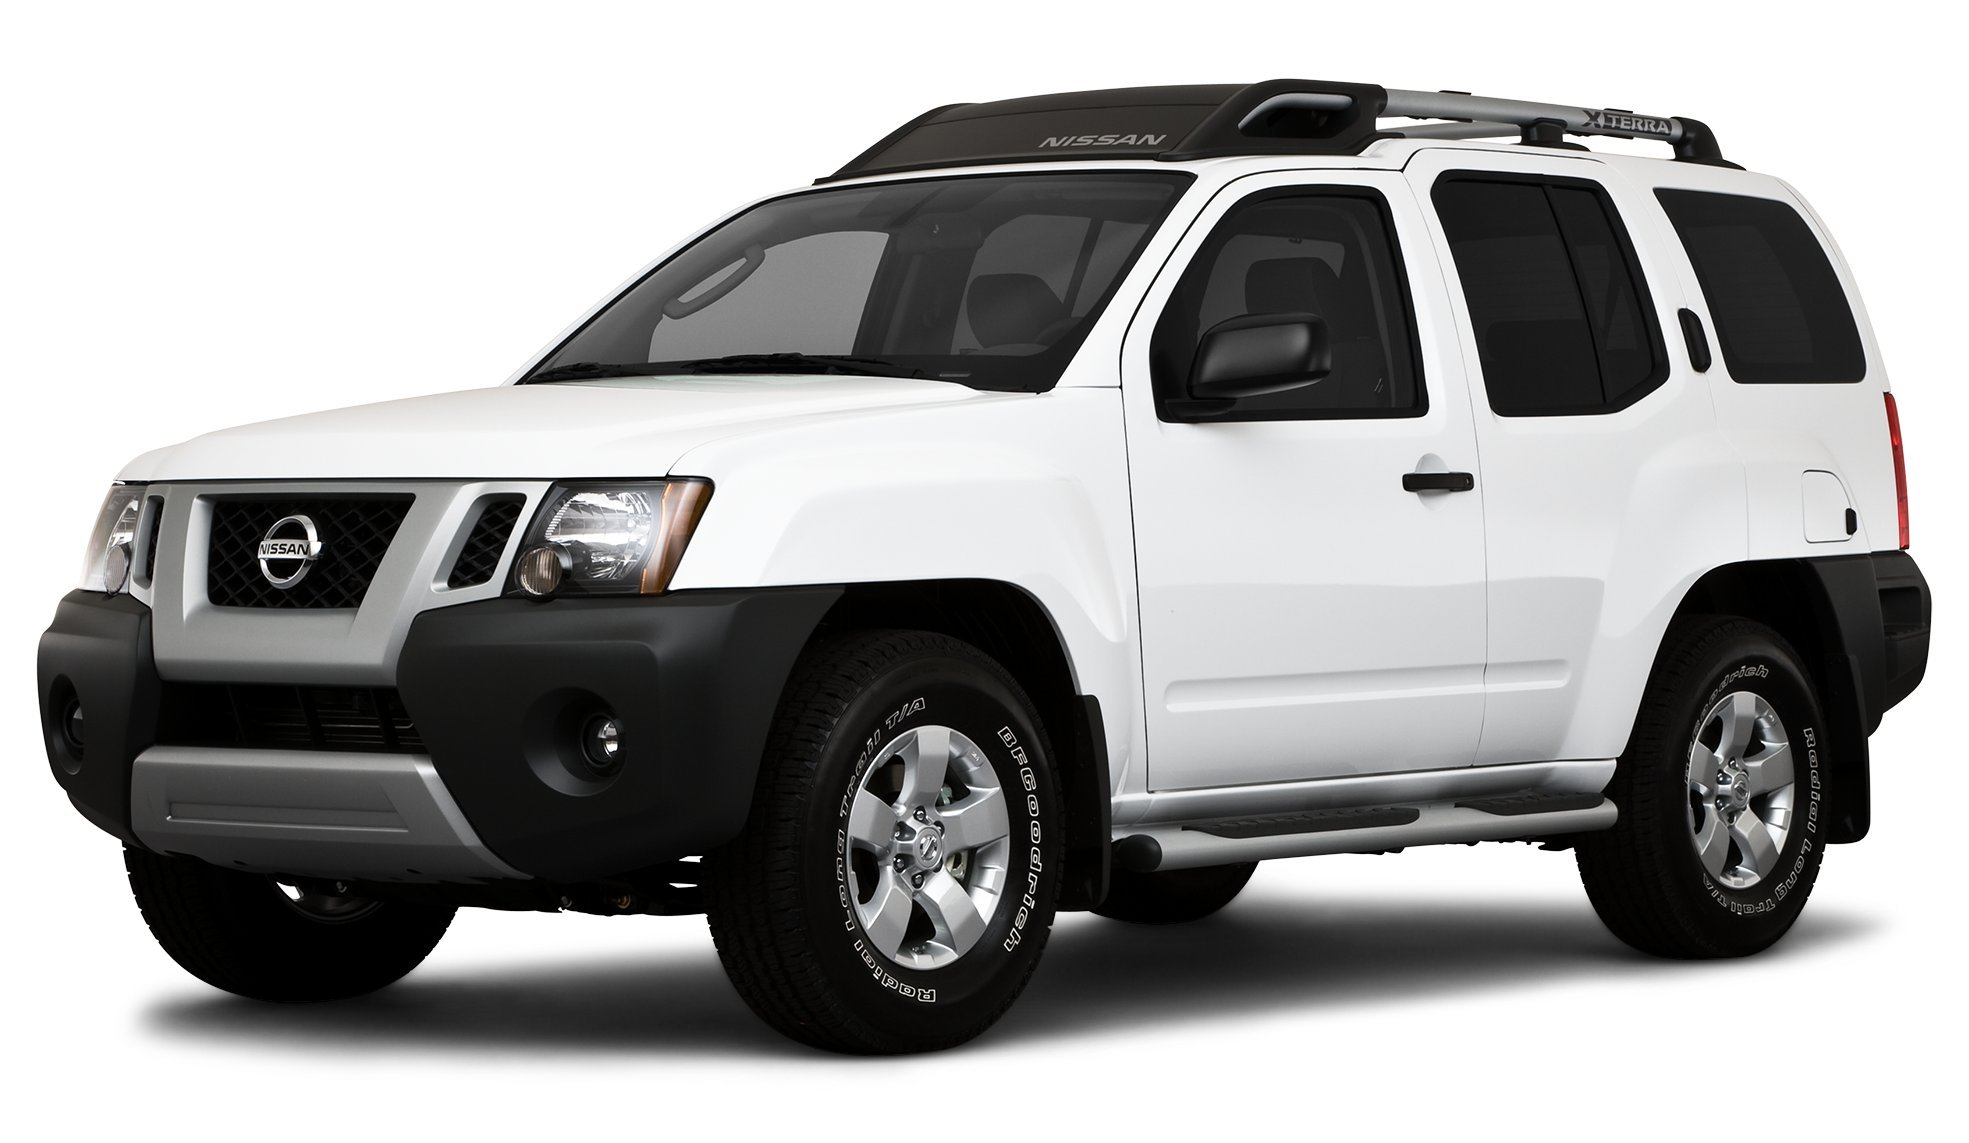 amazon com 2010 nissan xterra off road reviews images and specs vehicles 4 5 out of 5 stars19 customer ratings